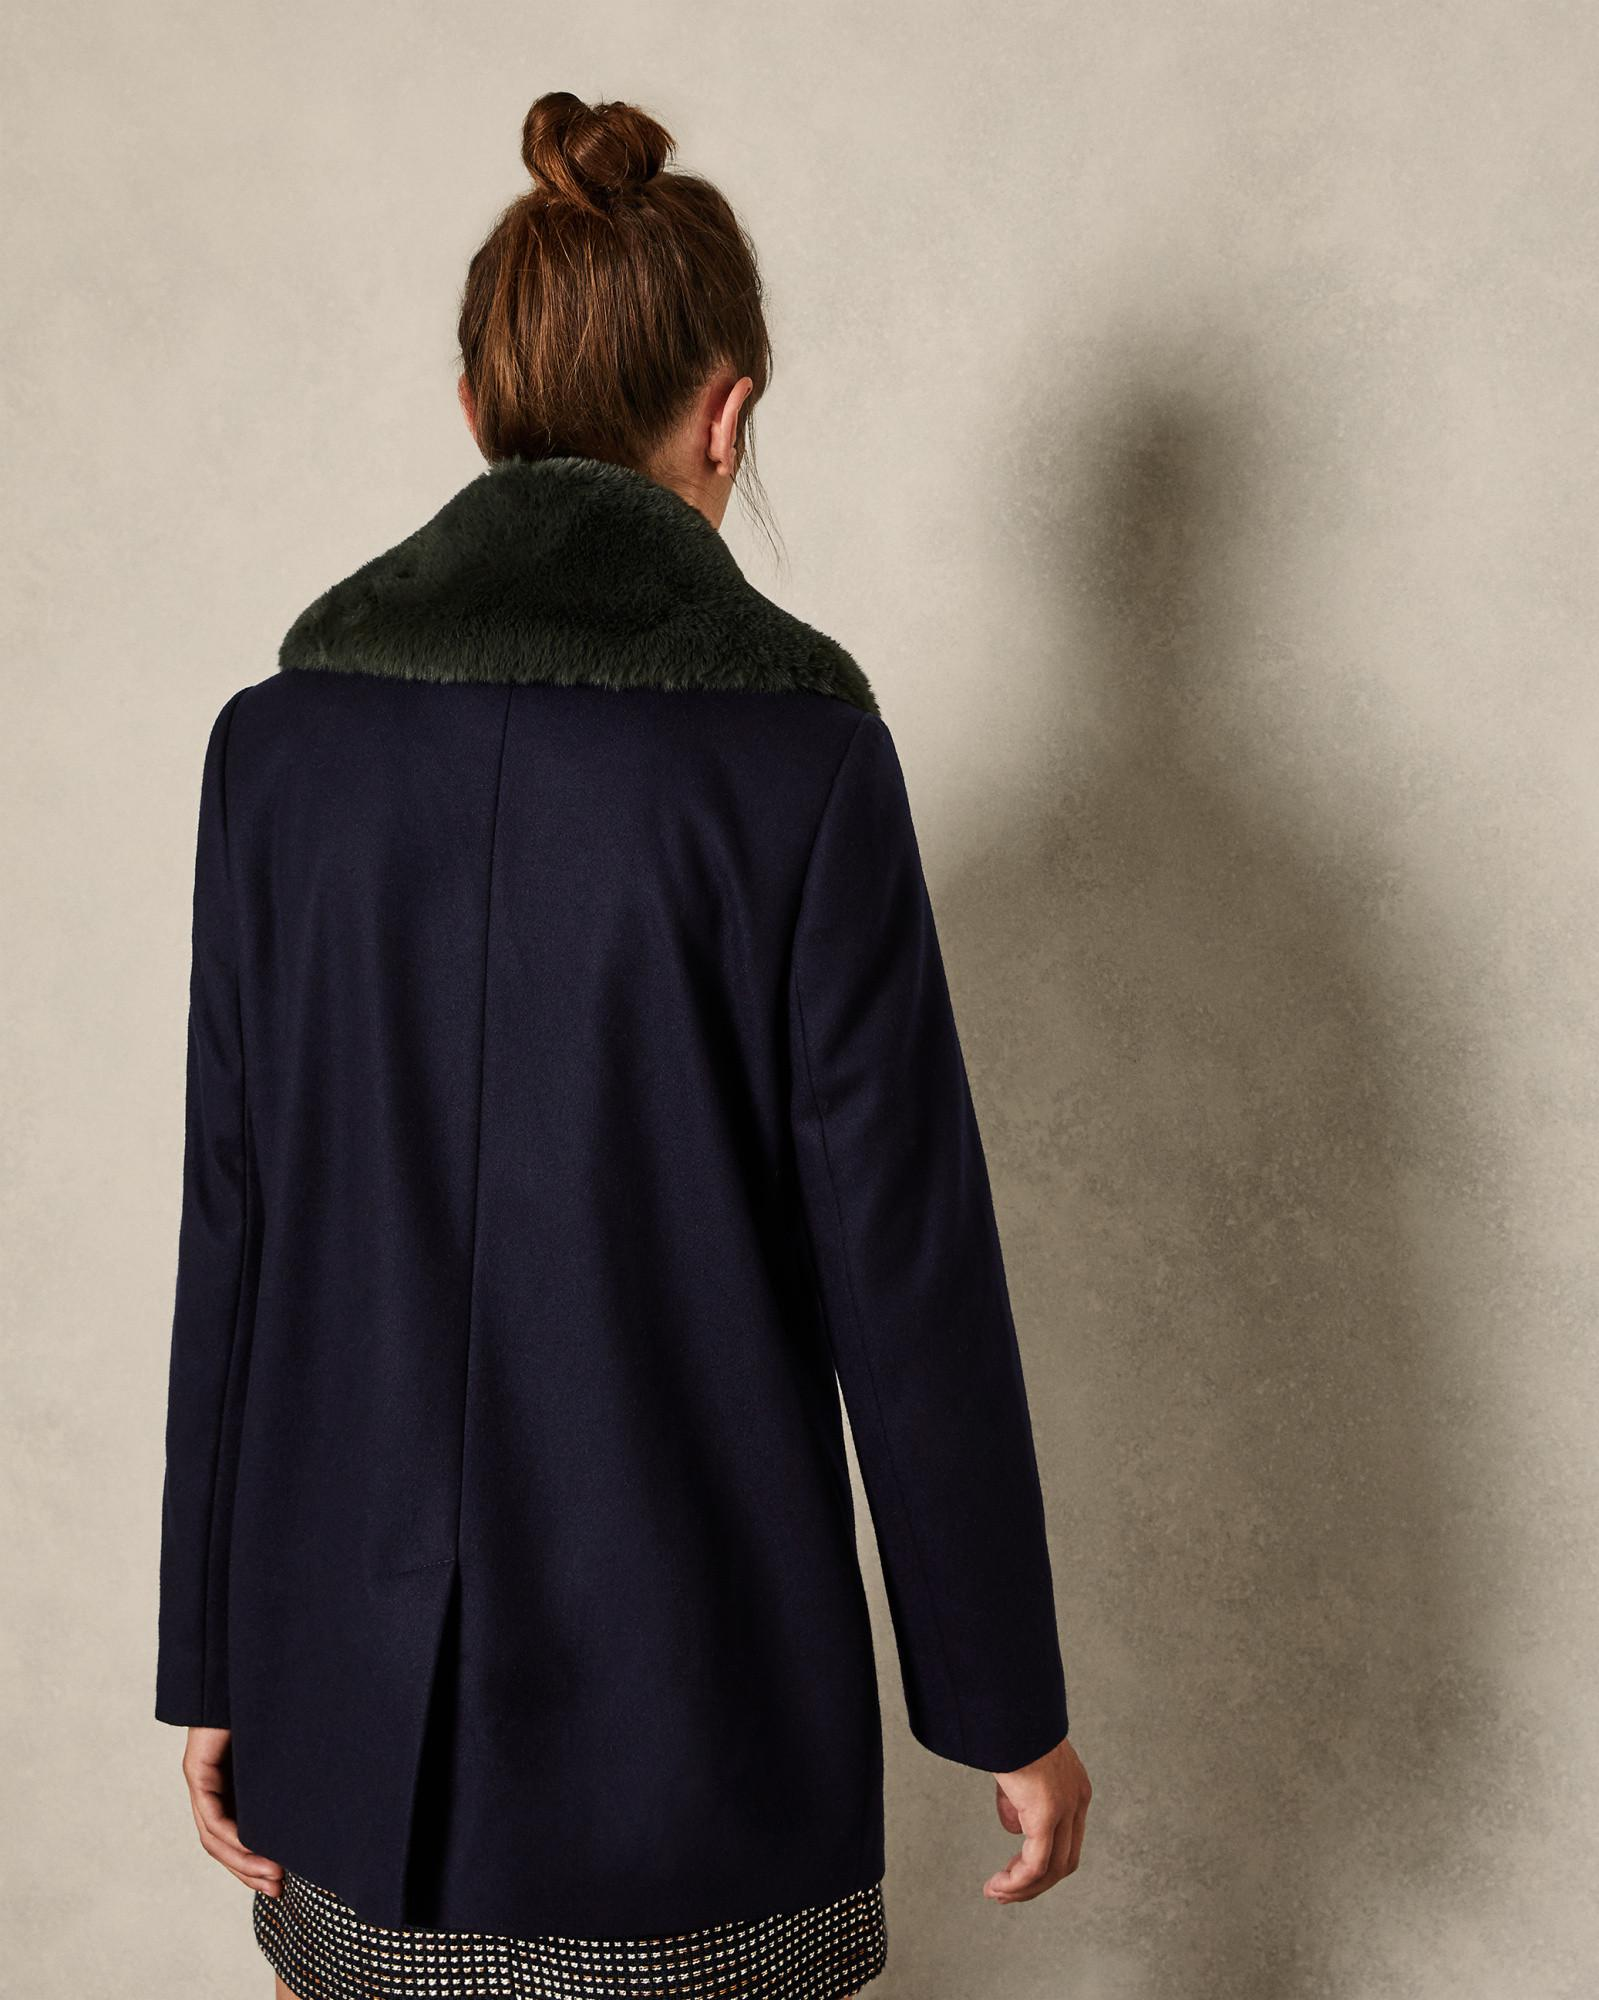 d38beb1c5 Lyst - Ted Baker Removable Faux Fur Collar Wool Pea Coat in Blue